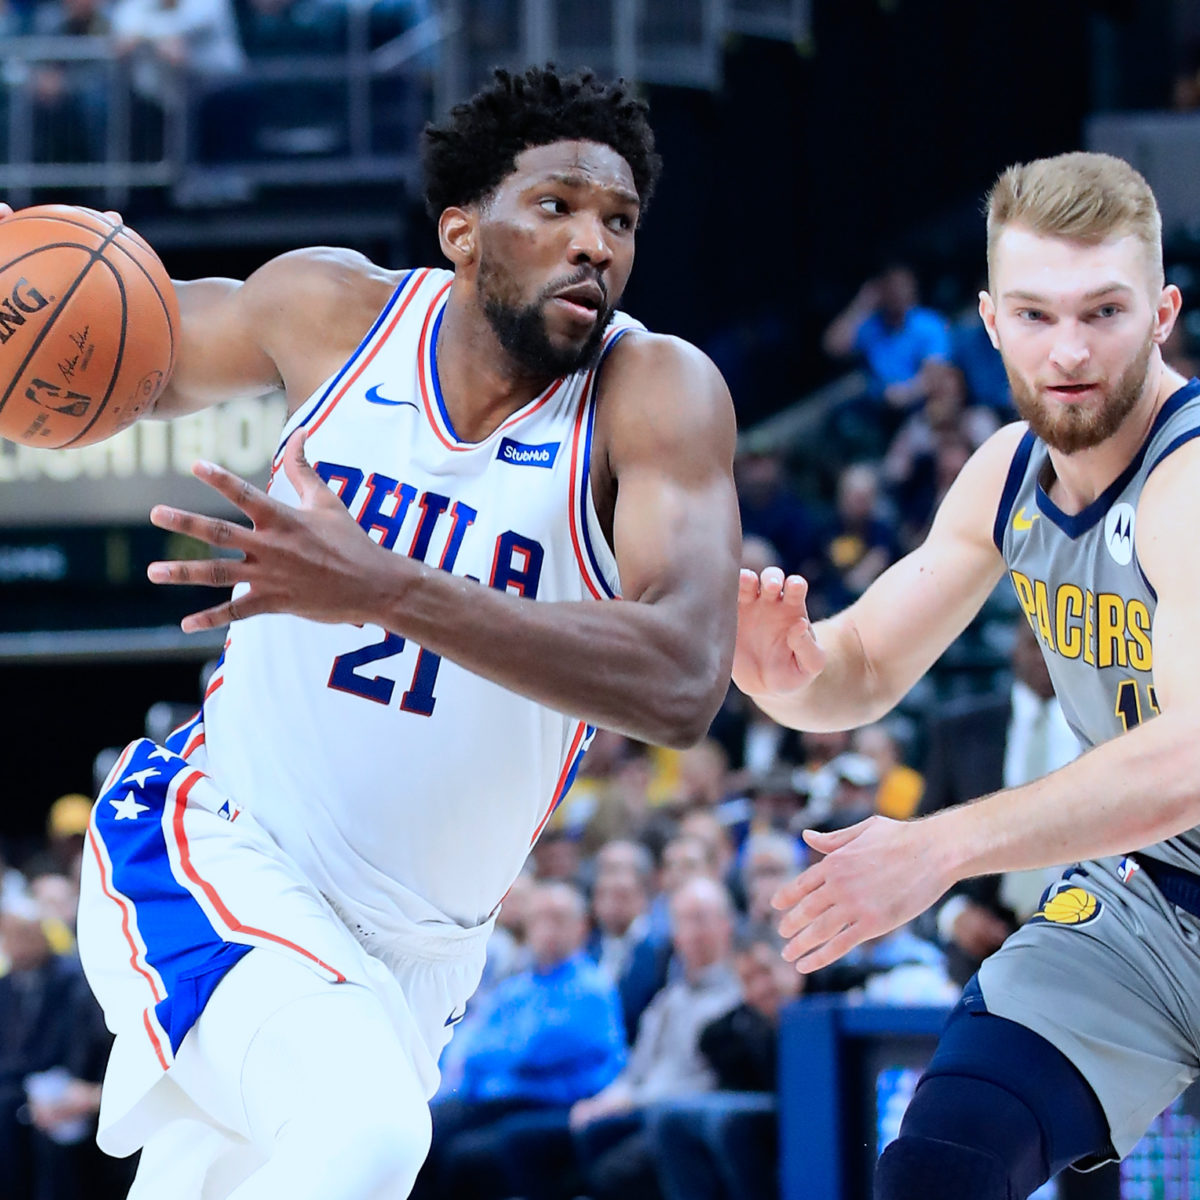 Joel Embiid of the Philadelphia 76ers dribbles the ball against the Indiana Pacers